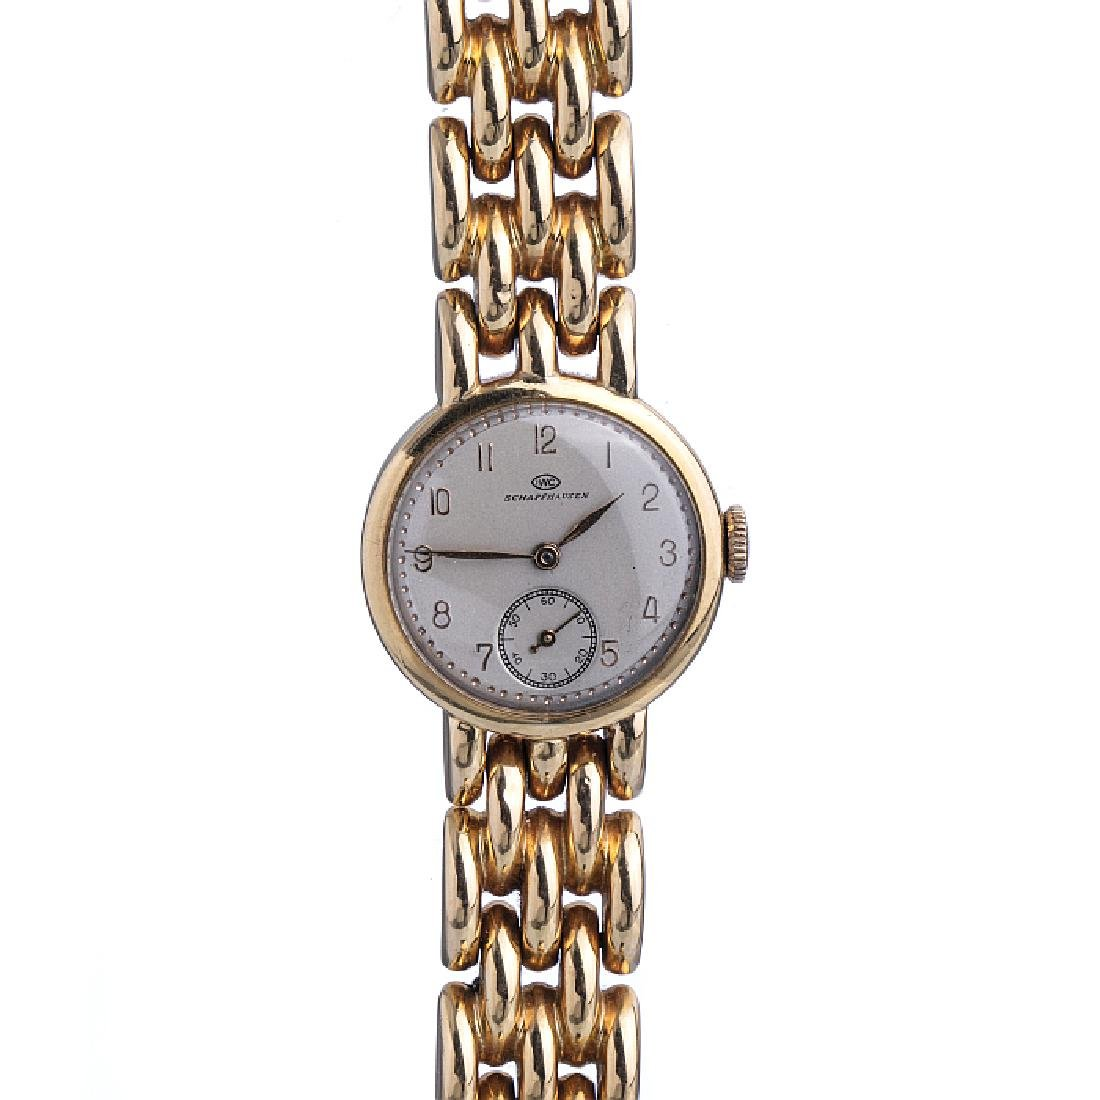 INTERNATIONAL WATCH Cº - Gold wristwatch for ladies